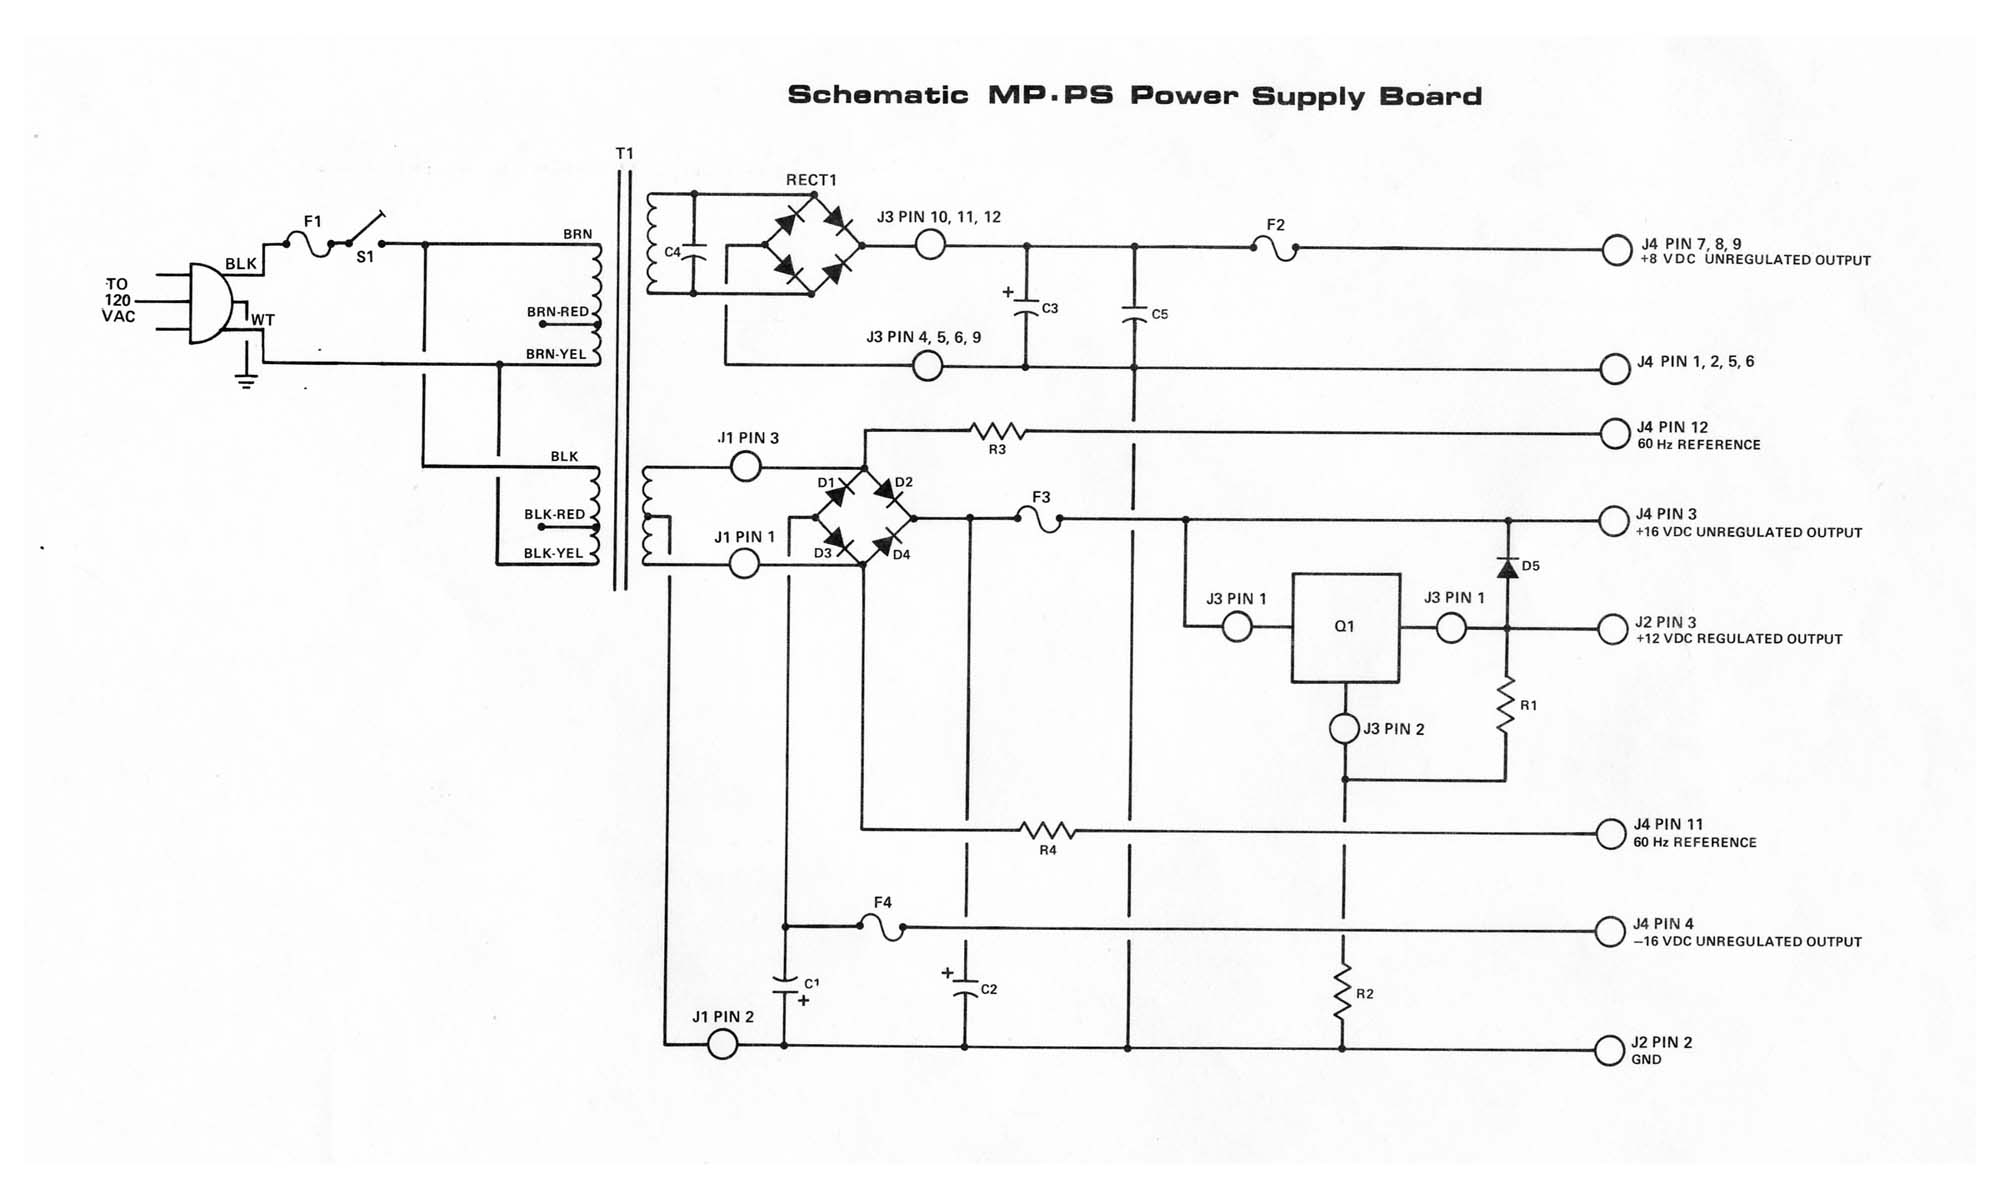 wiring diagram for a power pack pp 20 Download-MP P2 Power Supply Schematic 102k JPG 4-a